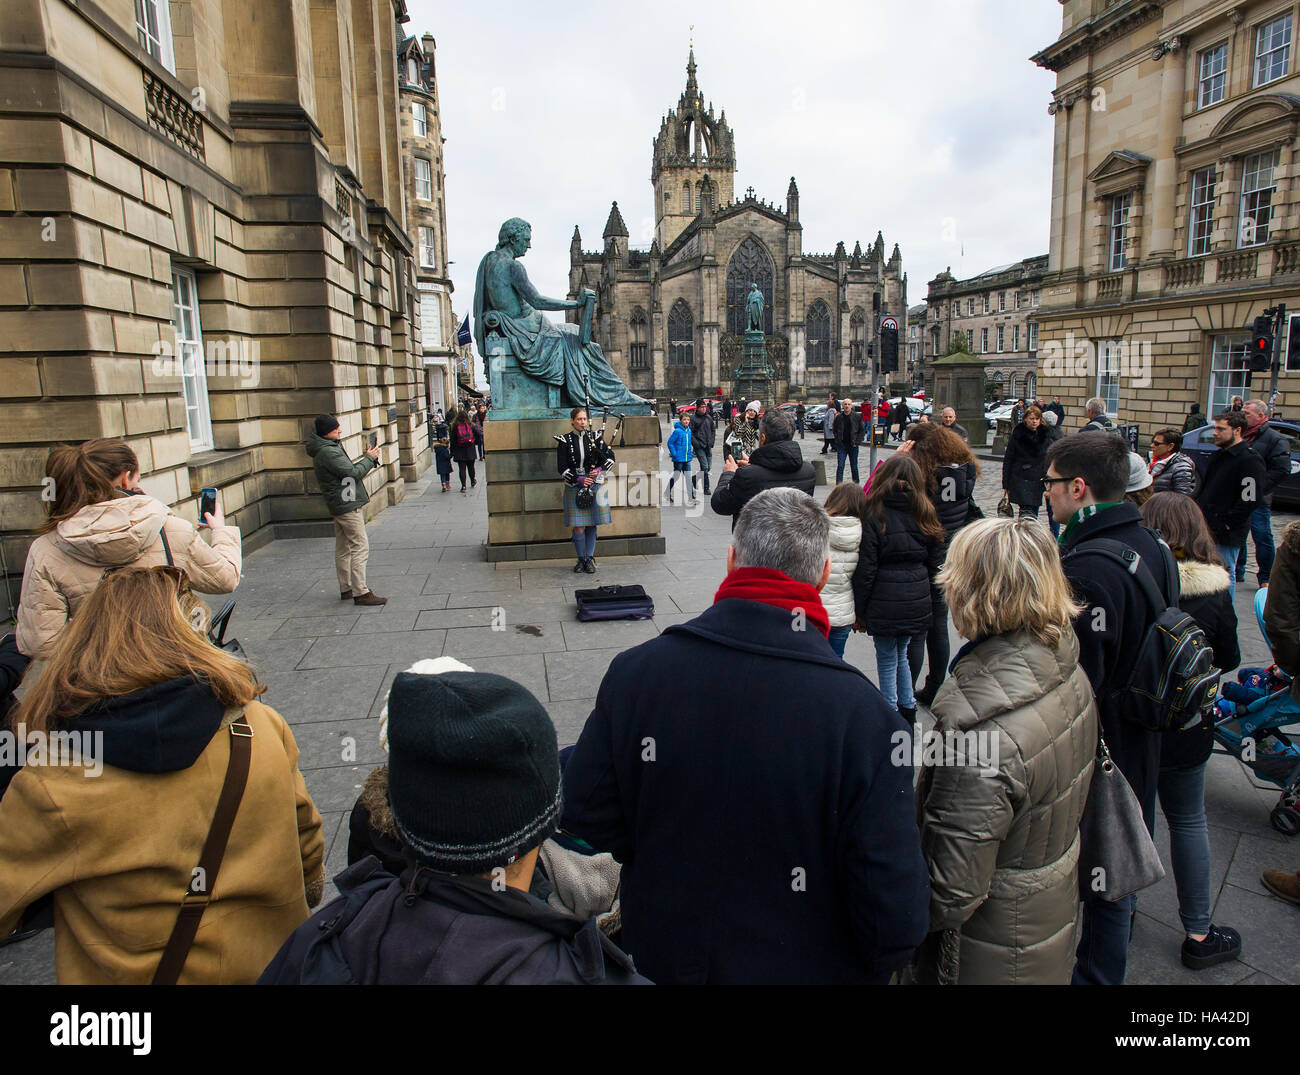 Tourists look at the statue of philosopher David Hume (1711 -1776) on Edinburgh's Royal Mile. - Stock Image